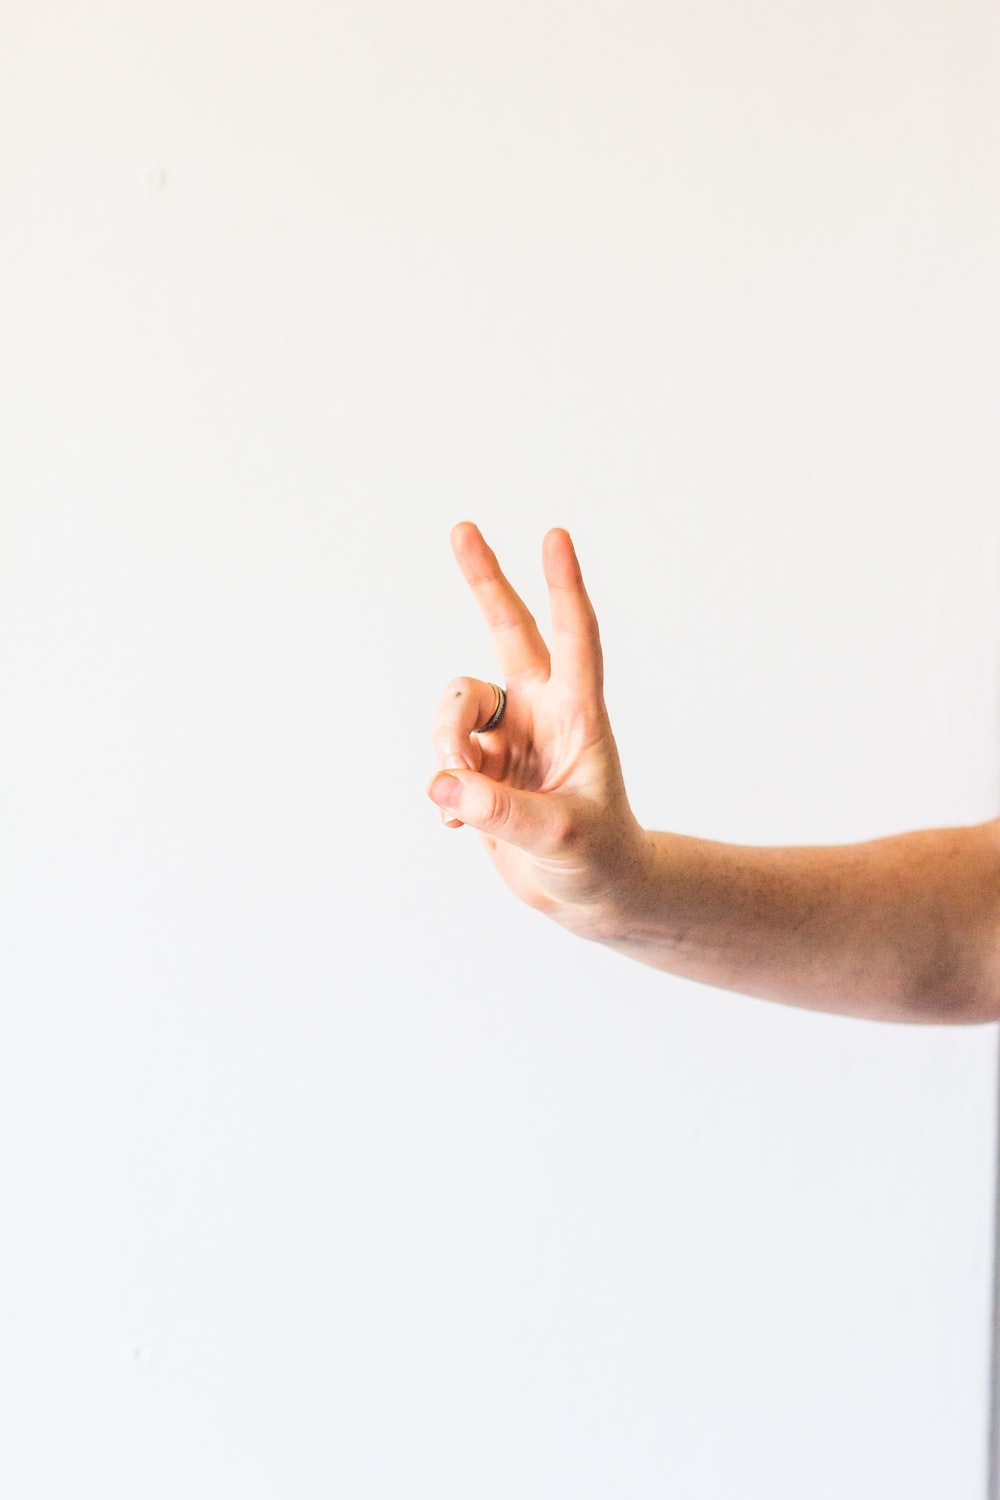 persons left hand doing thumbs up sign